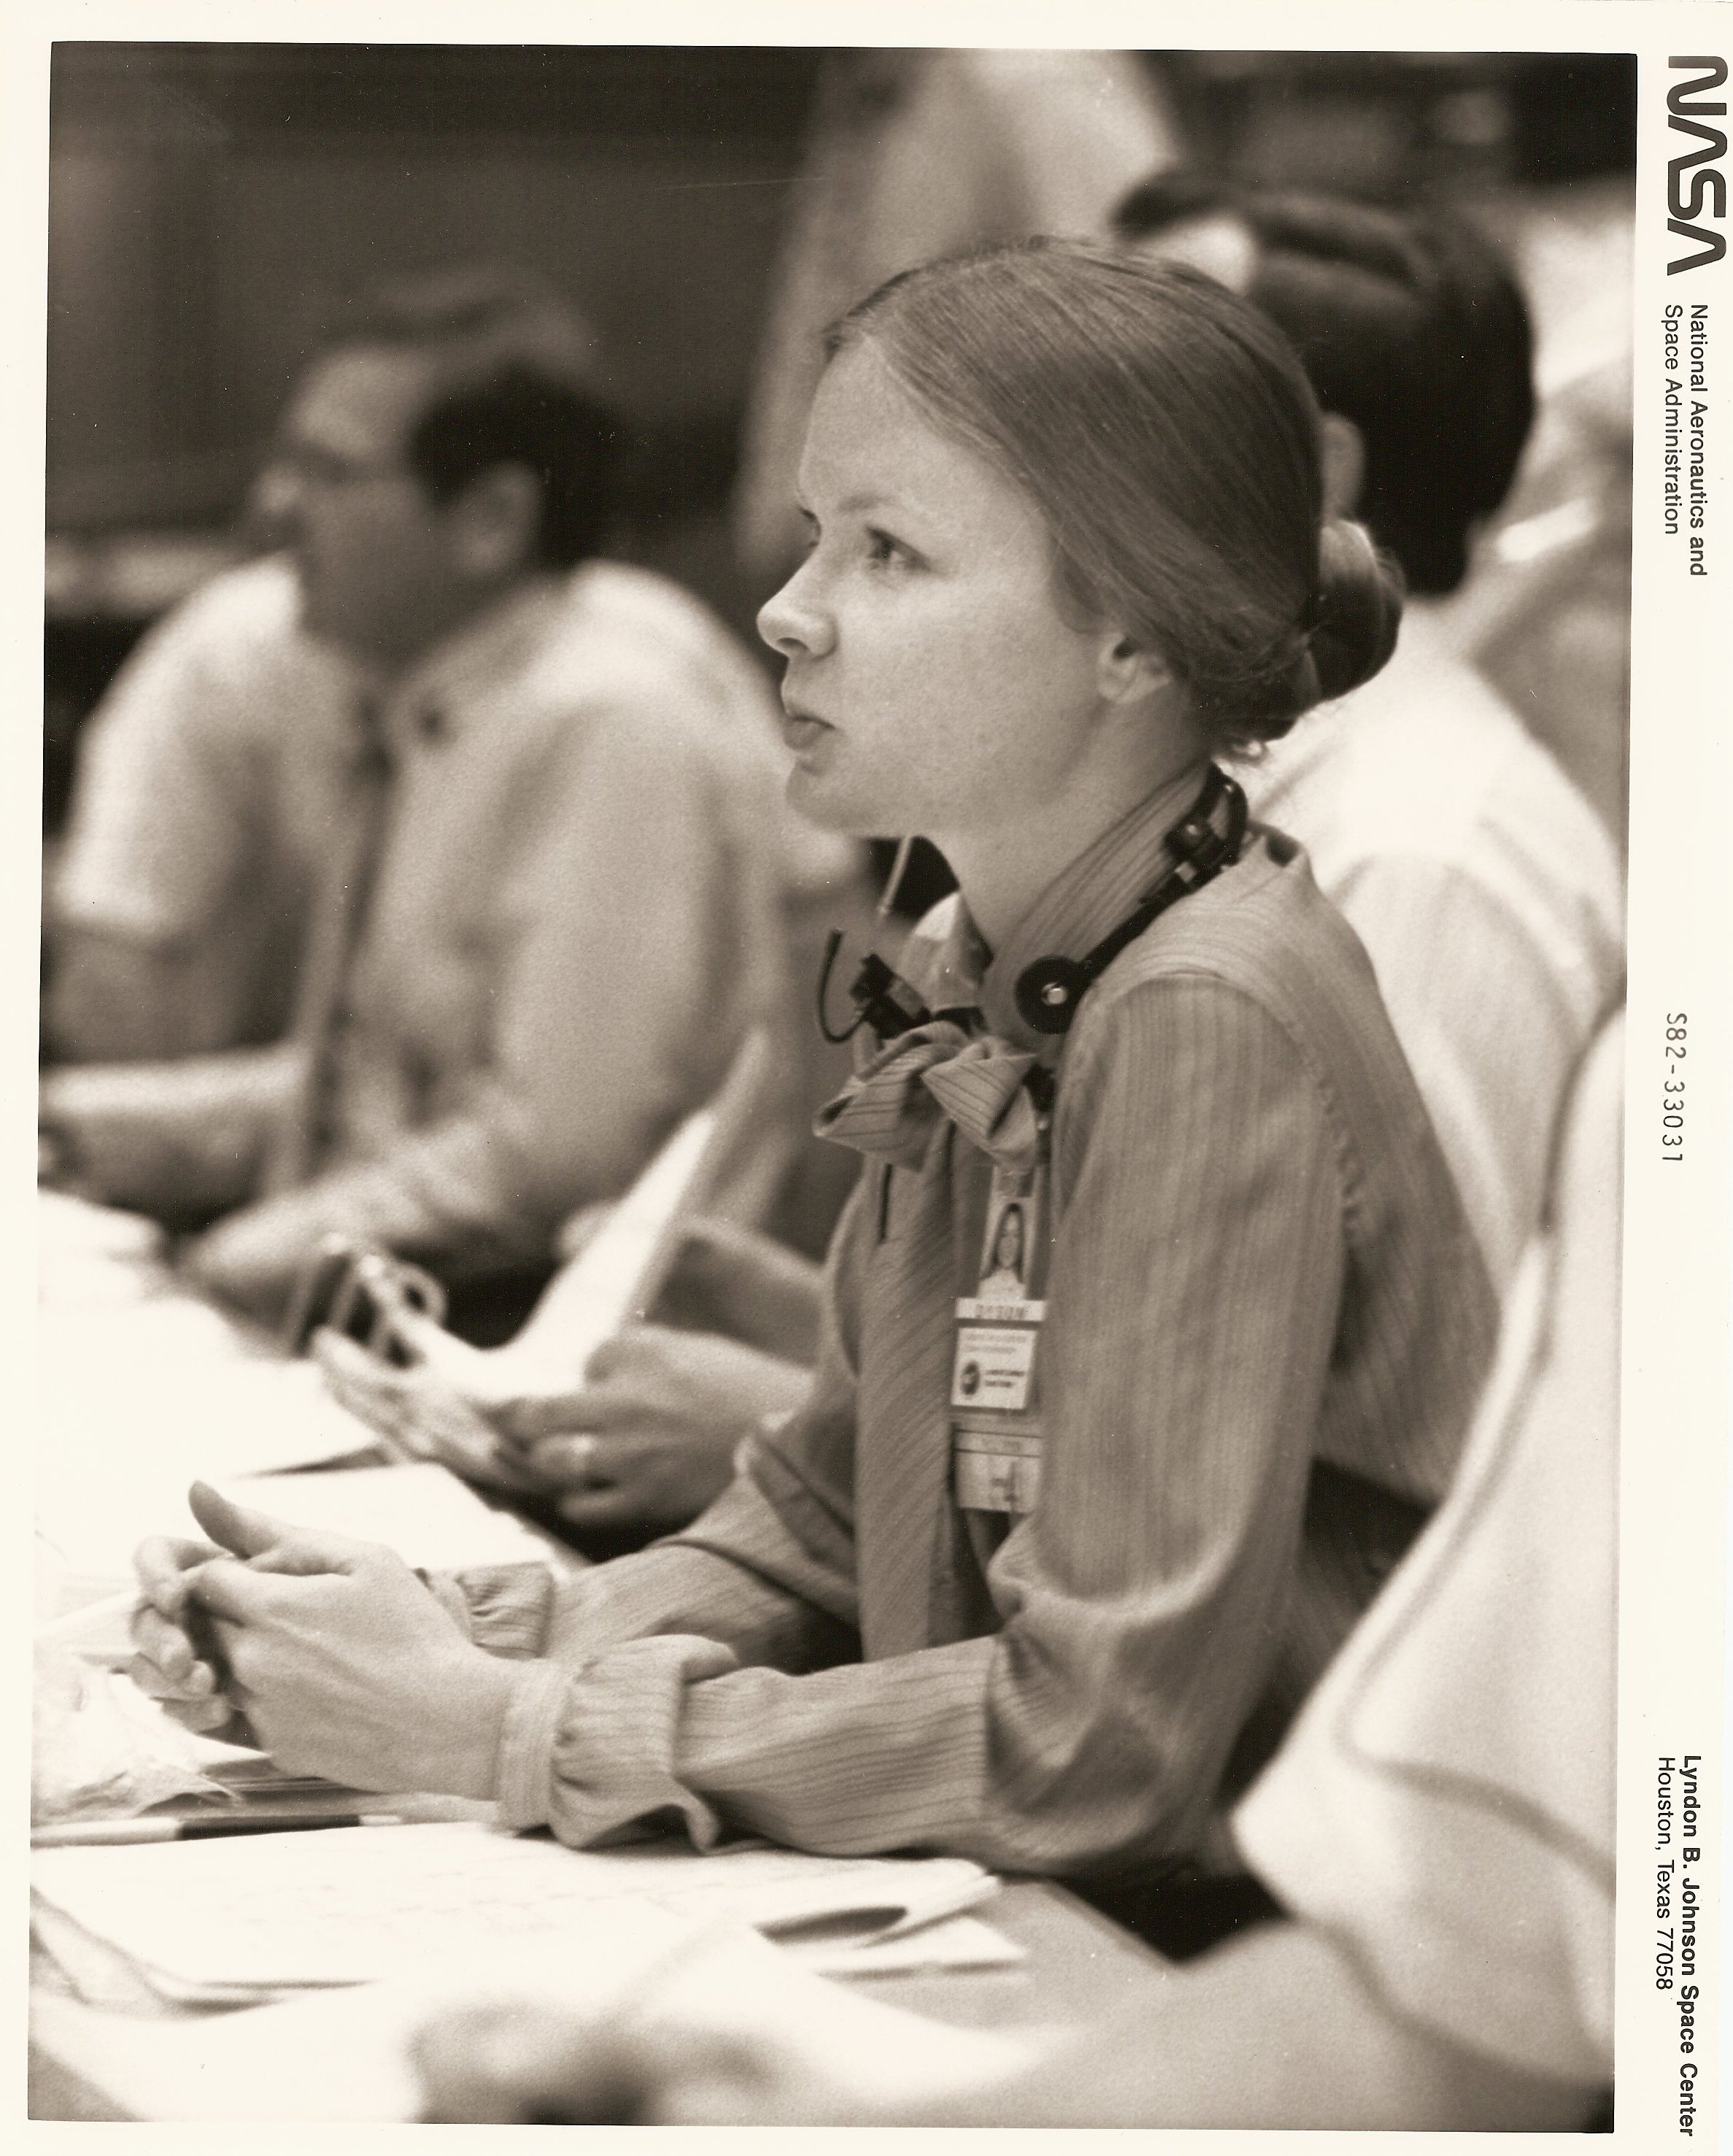 Marianne Jakmides Dyson during STS-4, July 1982